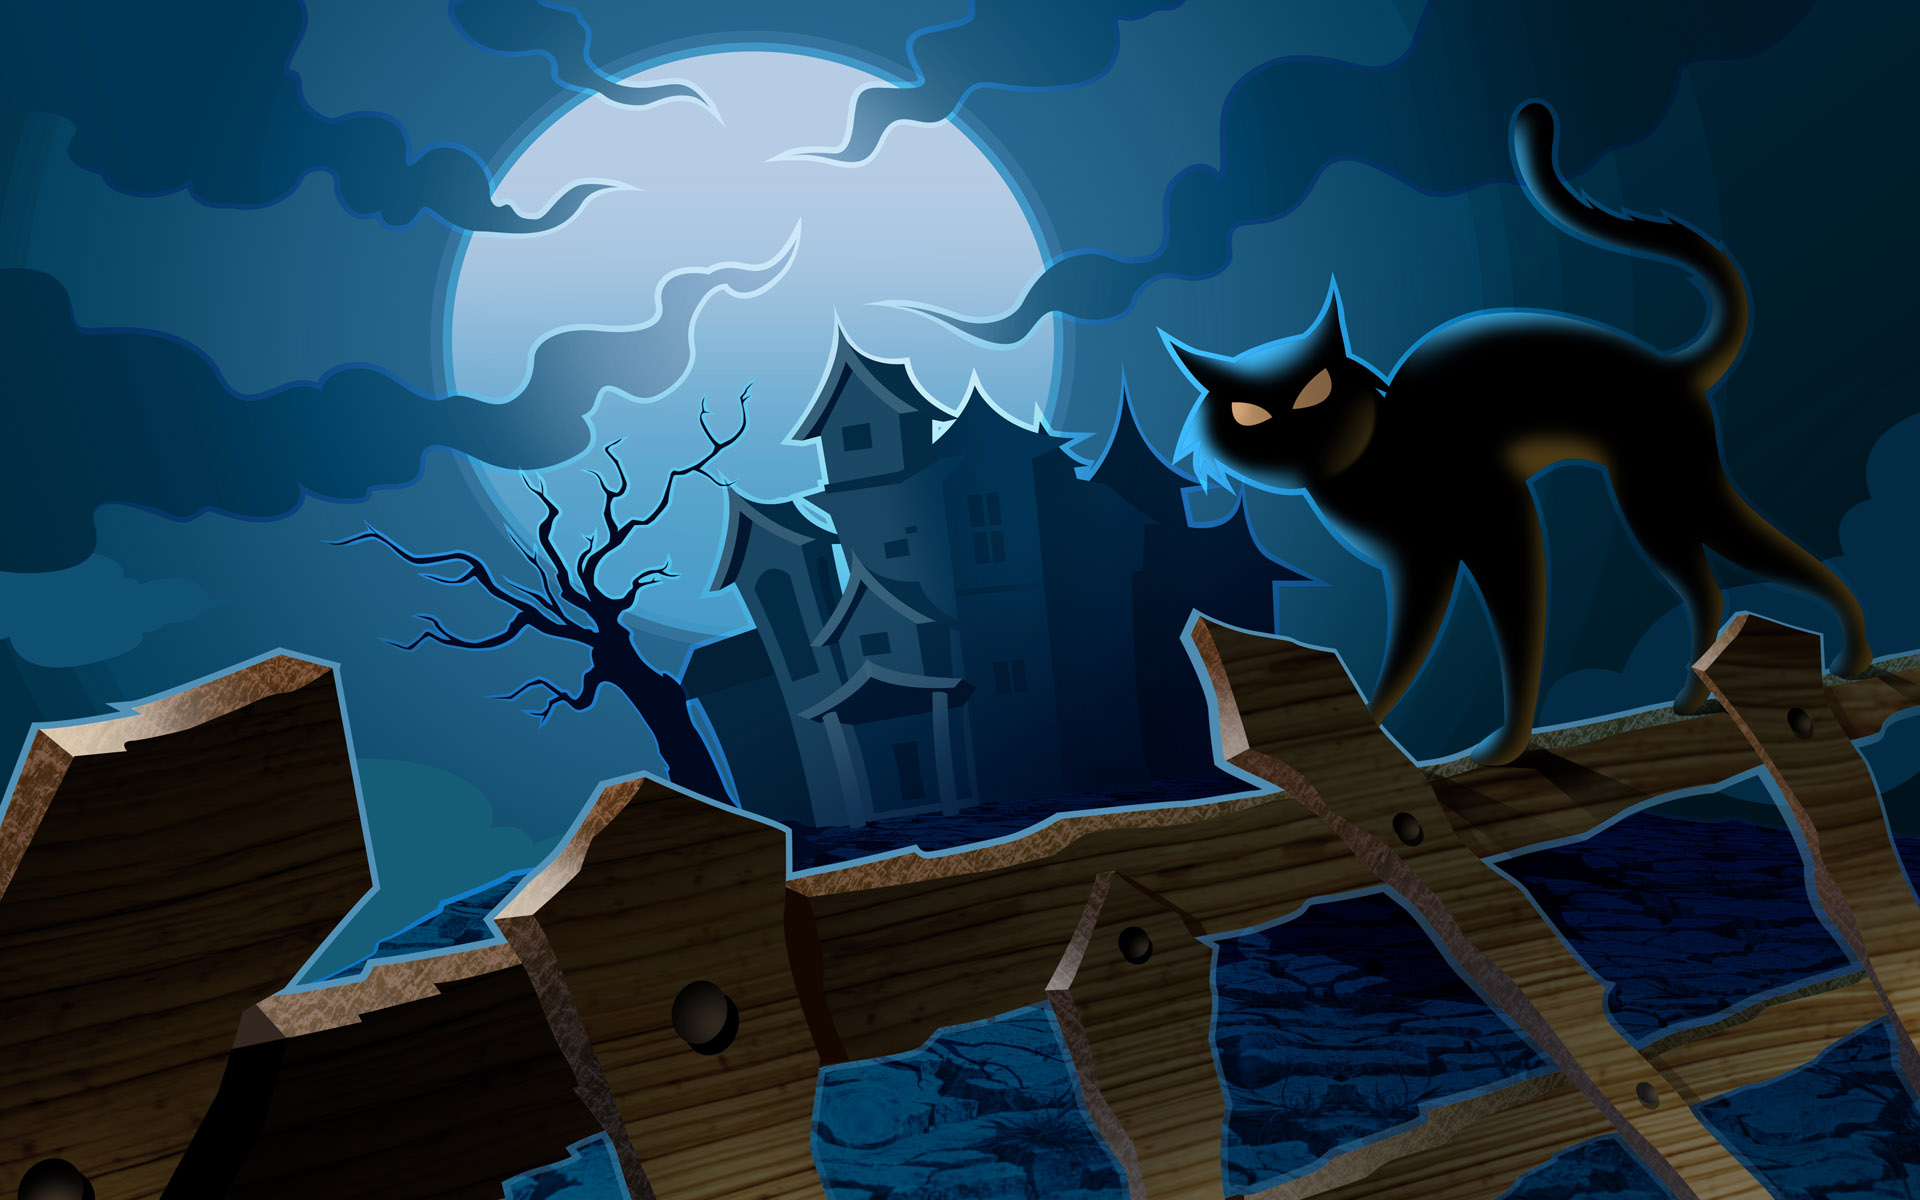 Wallpapers Pumpkins Witches Spider Web Bats Ghosts Collection 1920x1200